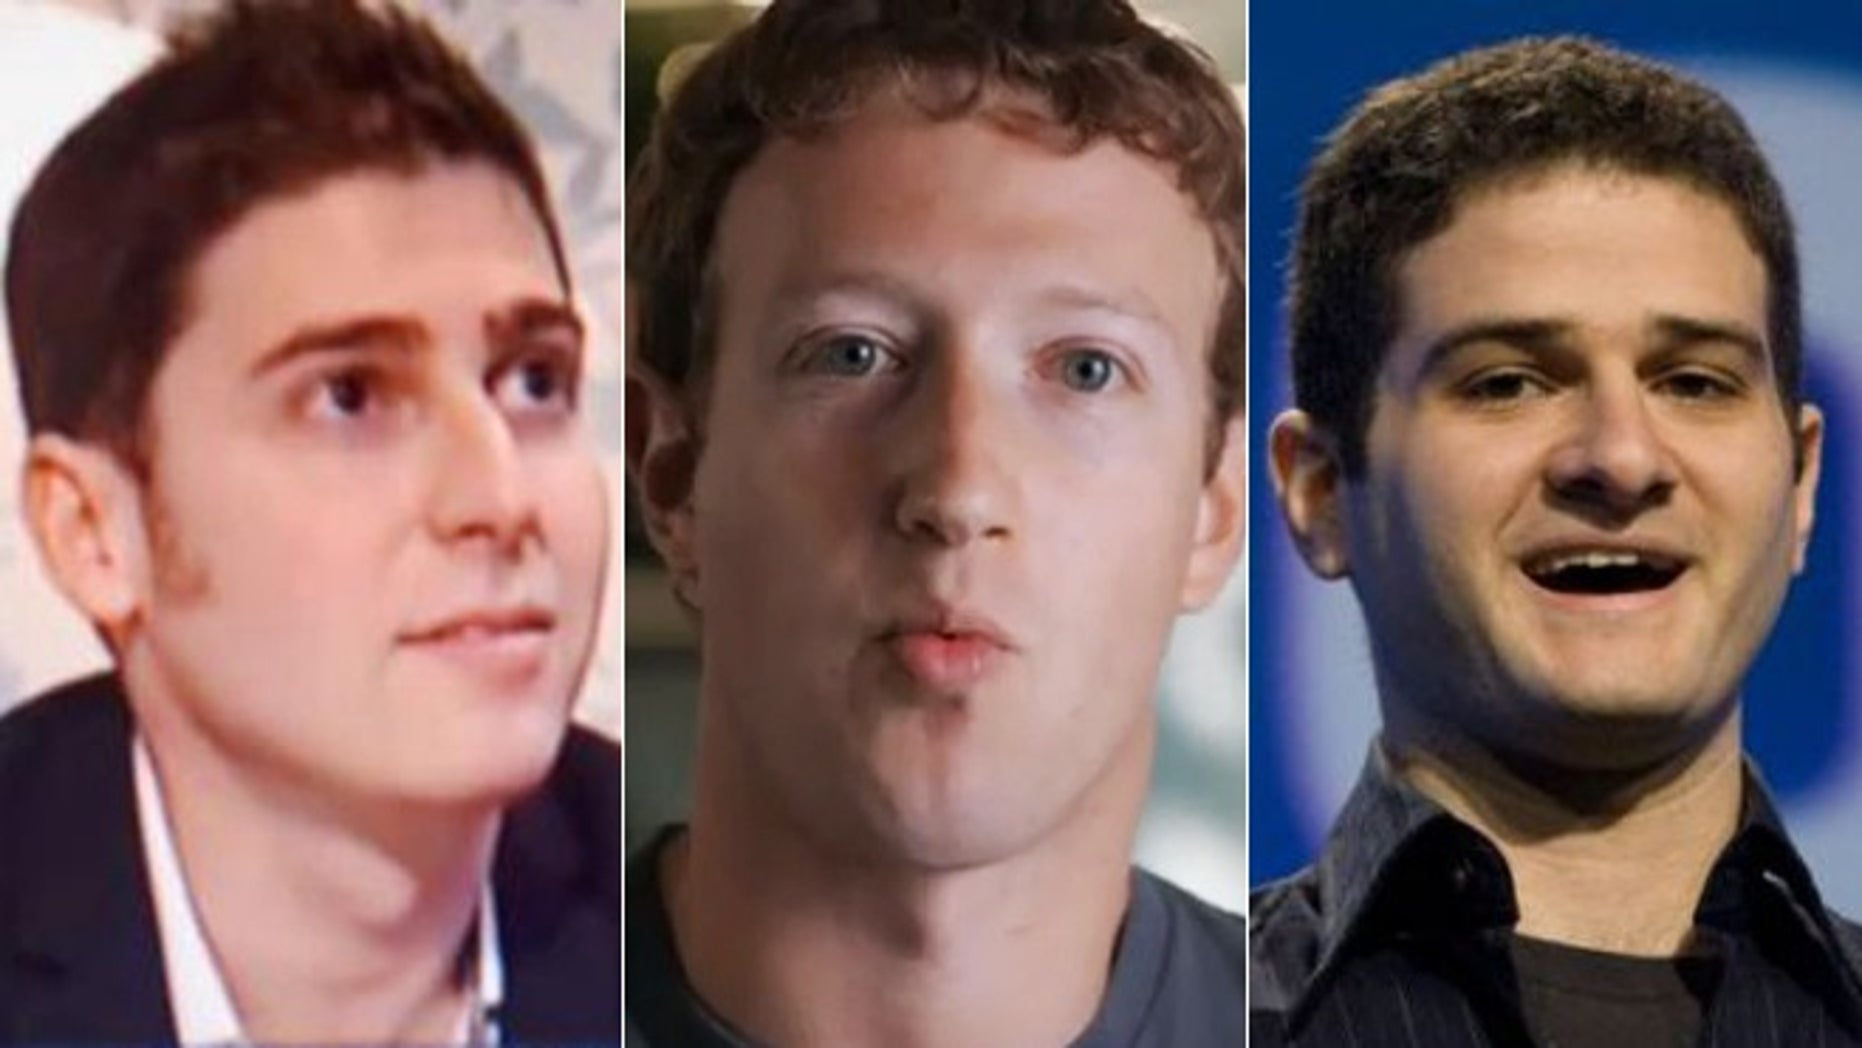 Facebook's Eduardo Saverin, Mark Zuckerberg and Dustin Moskowitz -- the youngest billionaires in the world, according to Forbes.